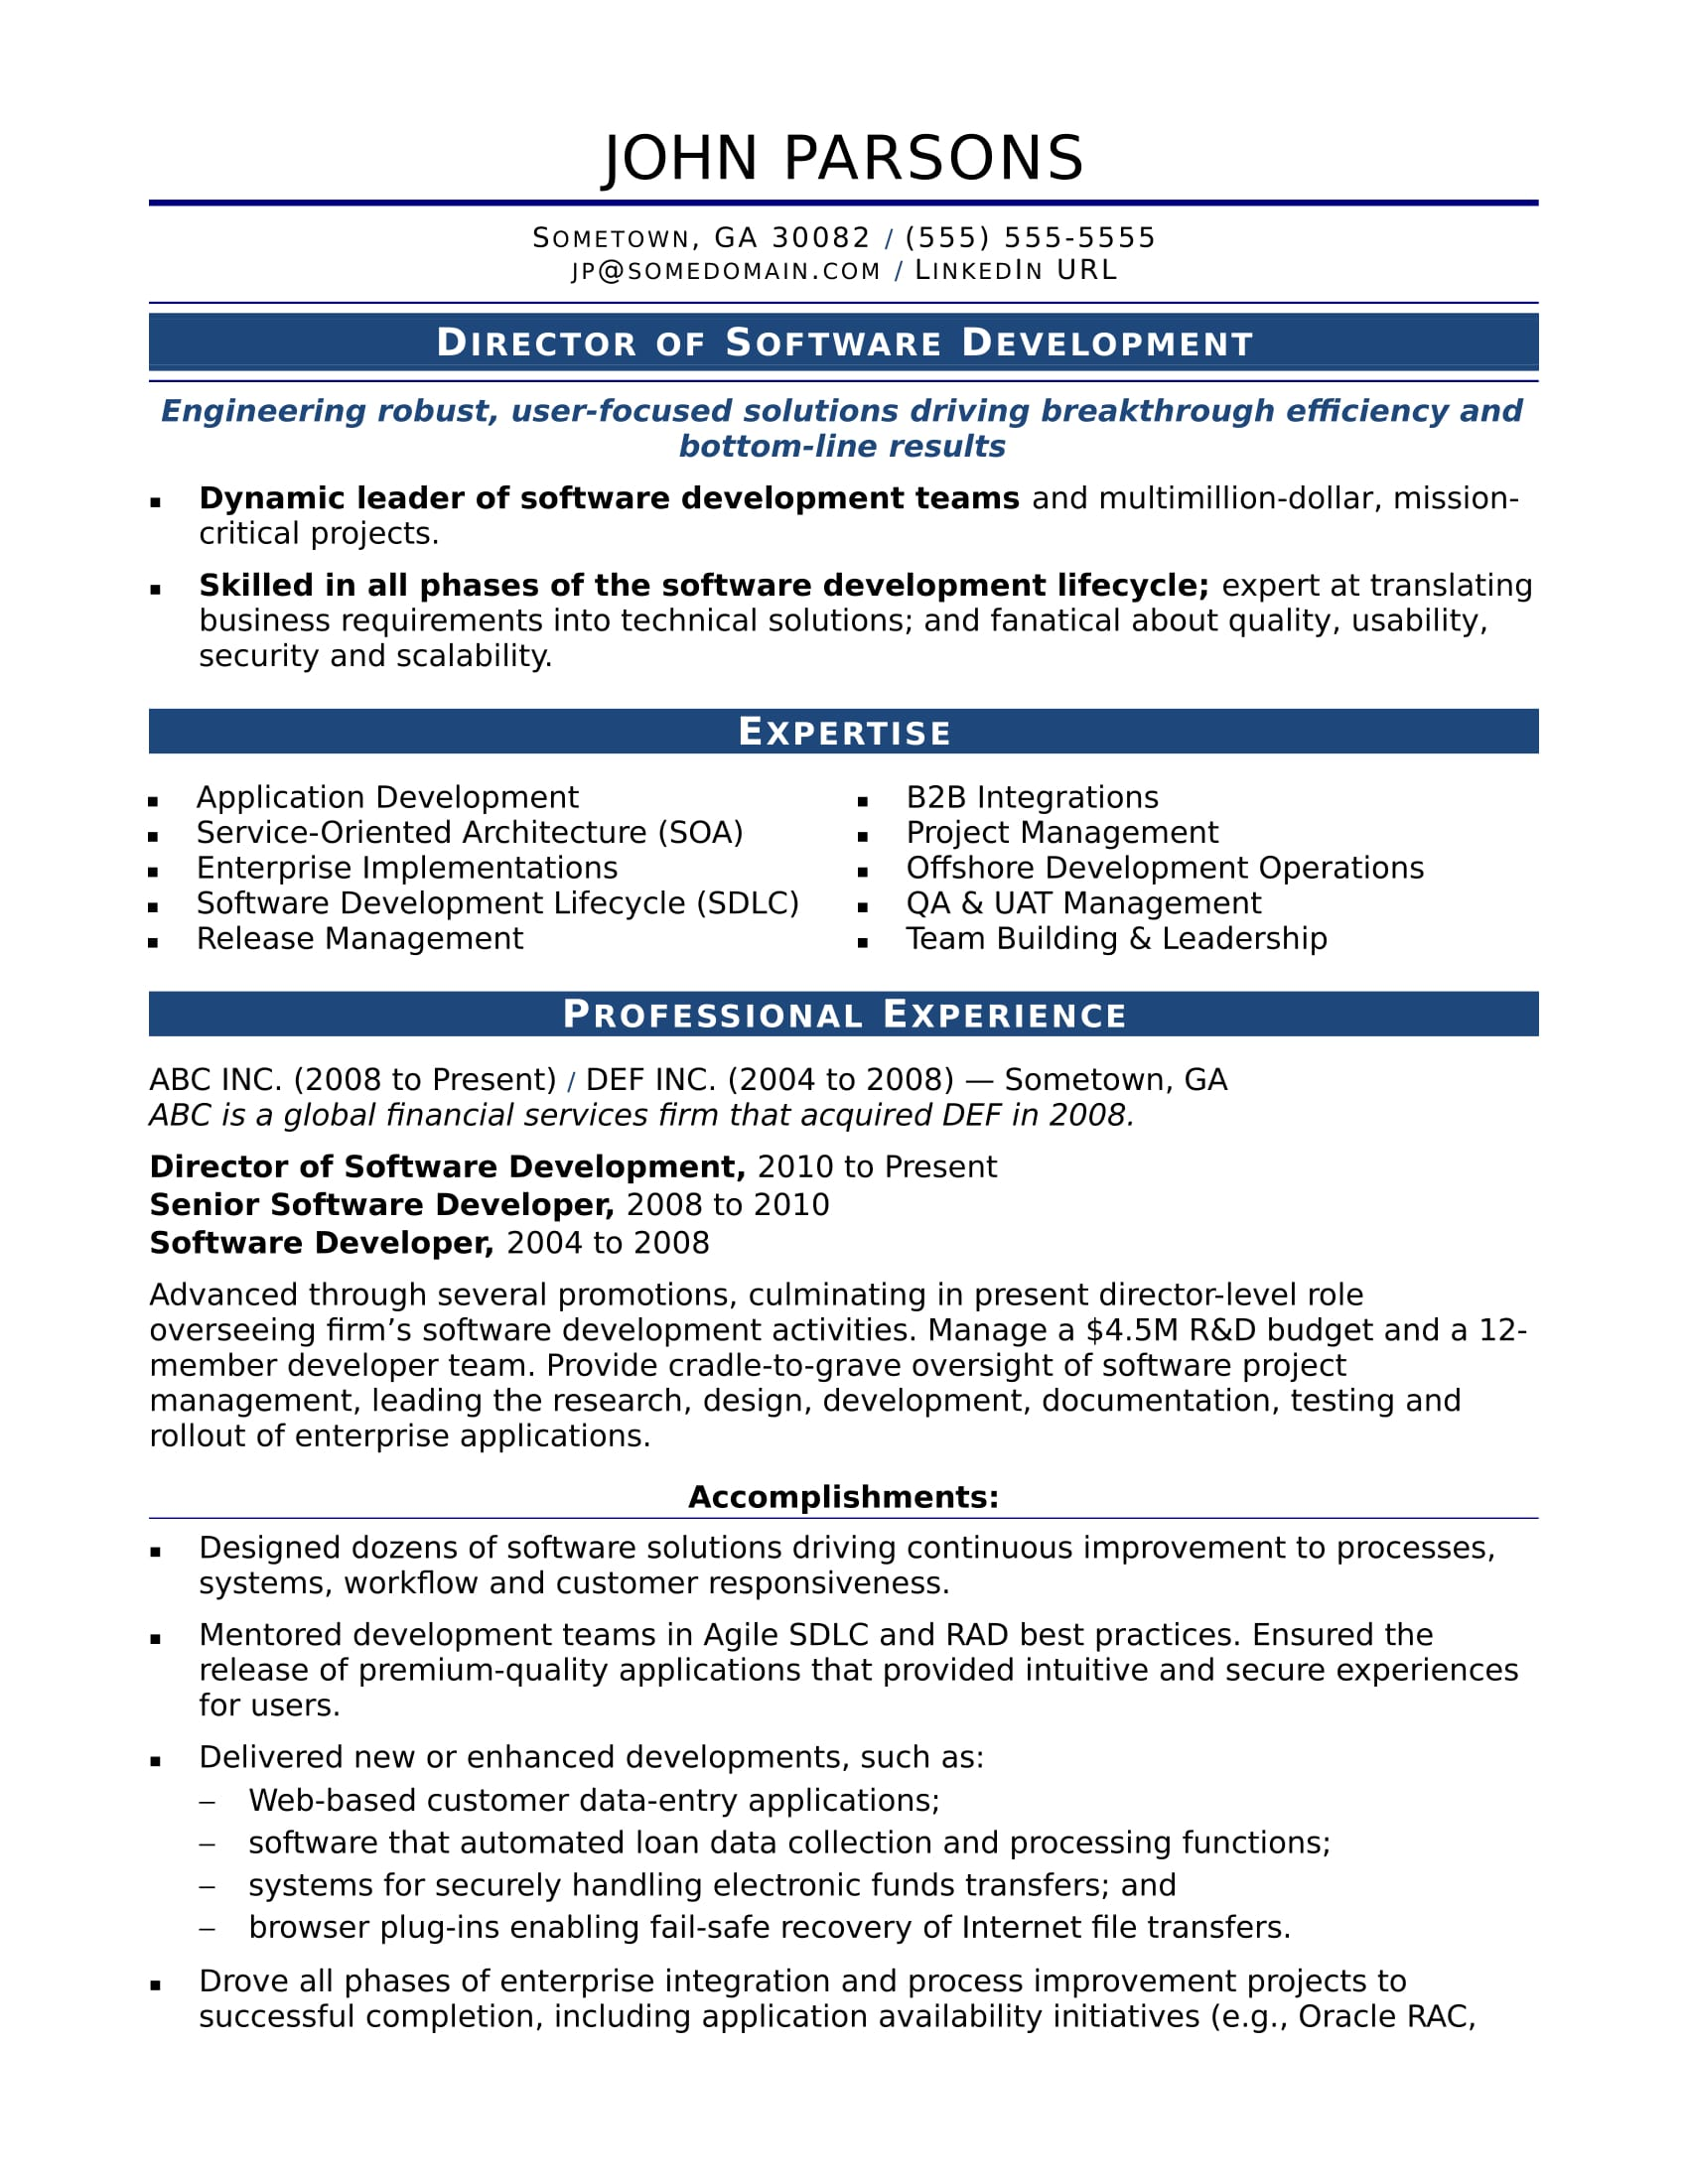 Sample Resume For An Experienced IT Developer  Example Of An Resume